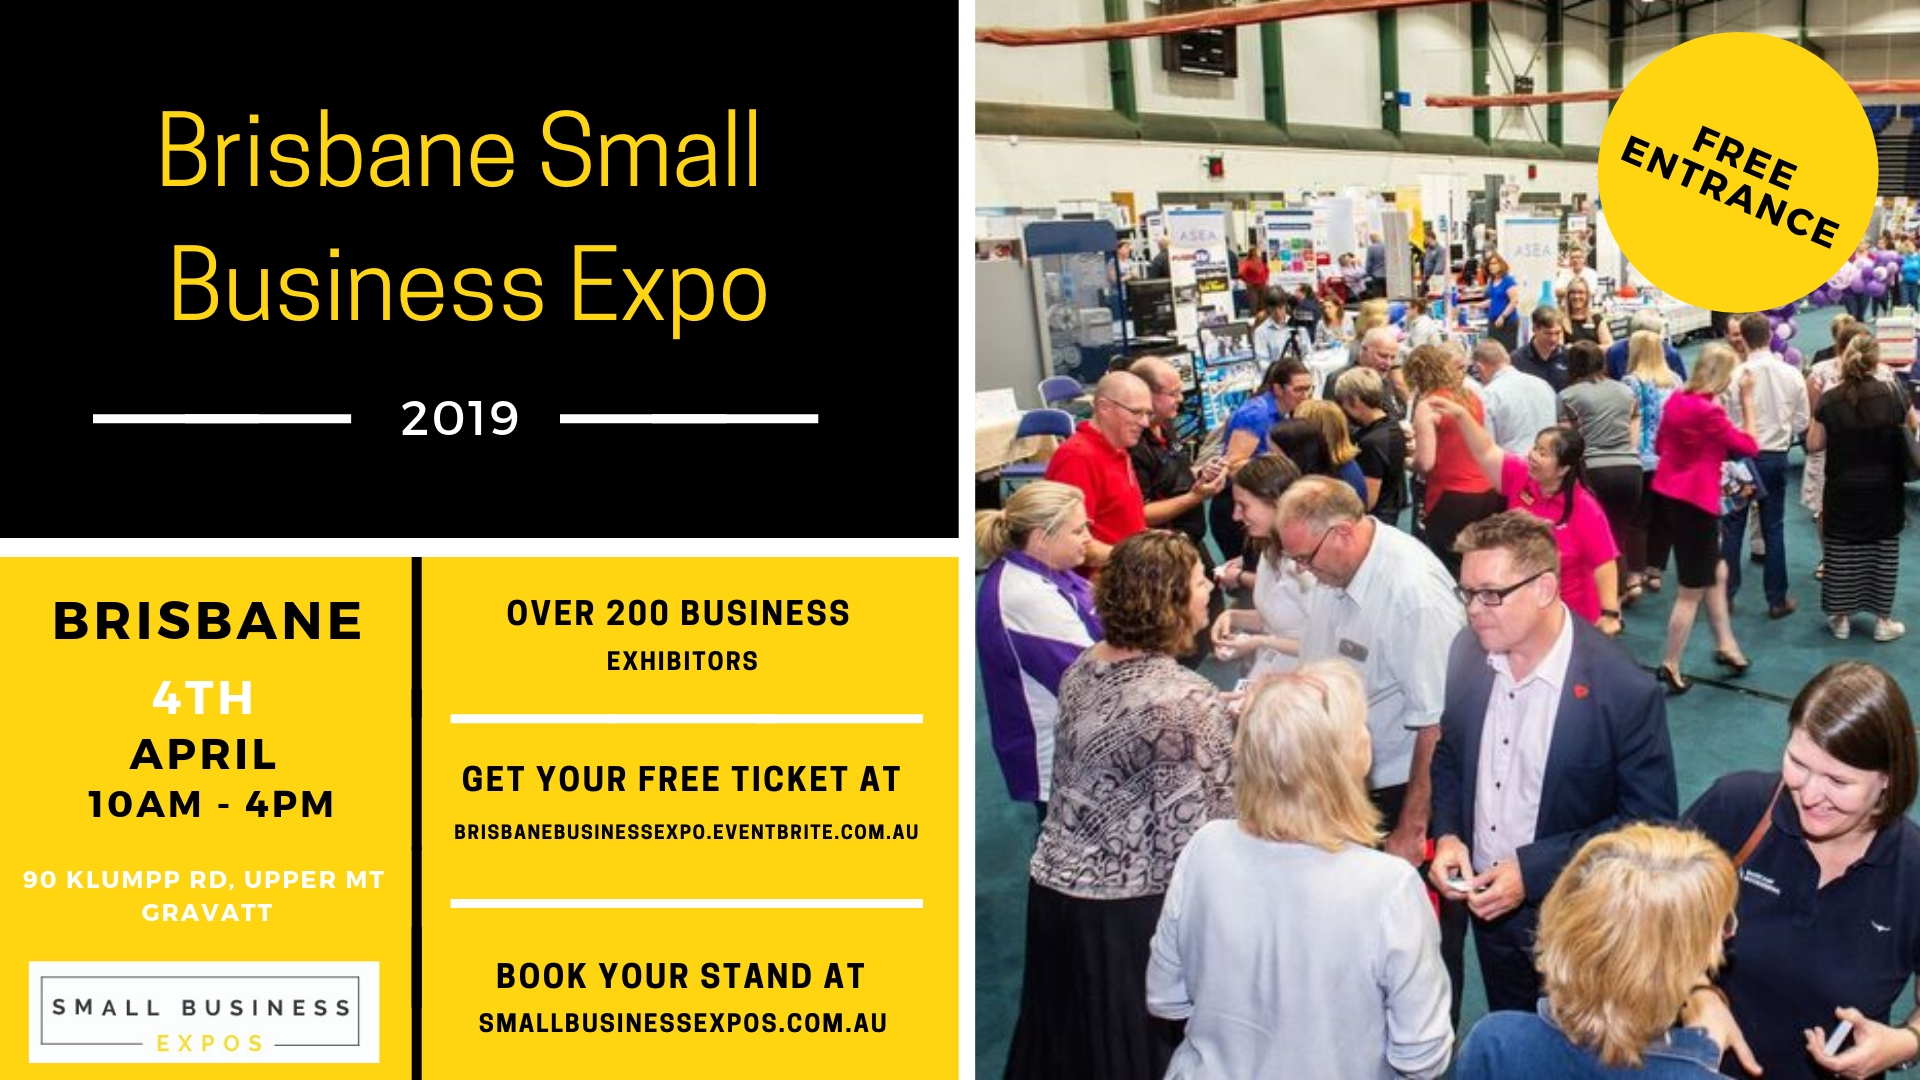 Business Expos | Brisbane | Gold Coast | Small Business Expos | Brisbane Expo Facebook Event